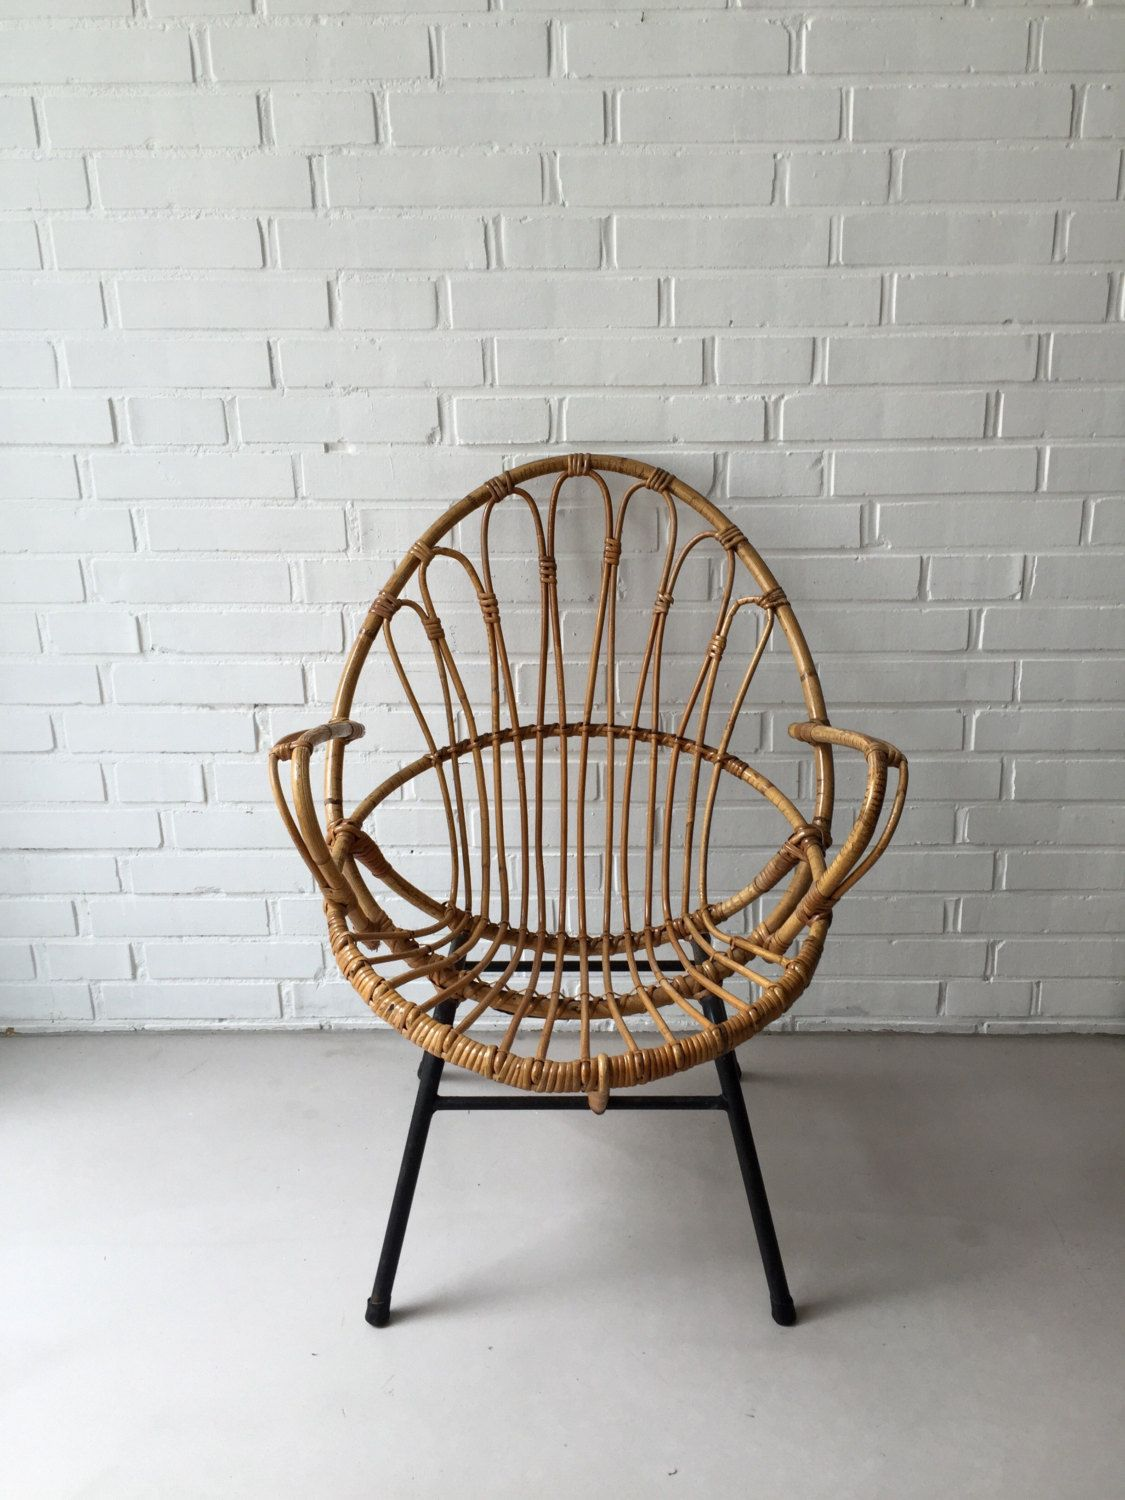 Vintage Rattan Chair Wicker Bamboo Chairs